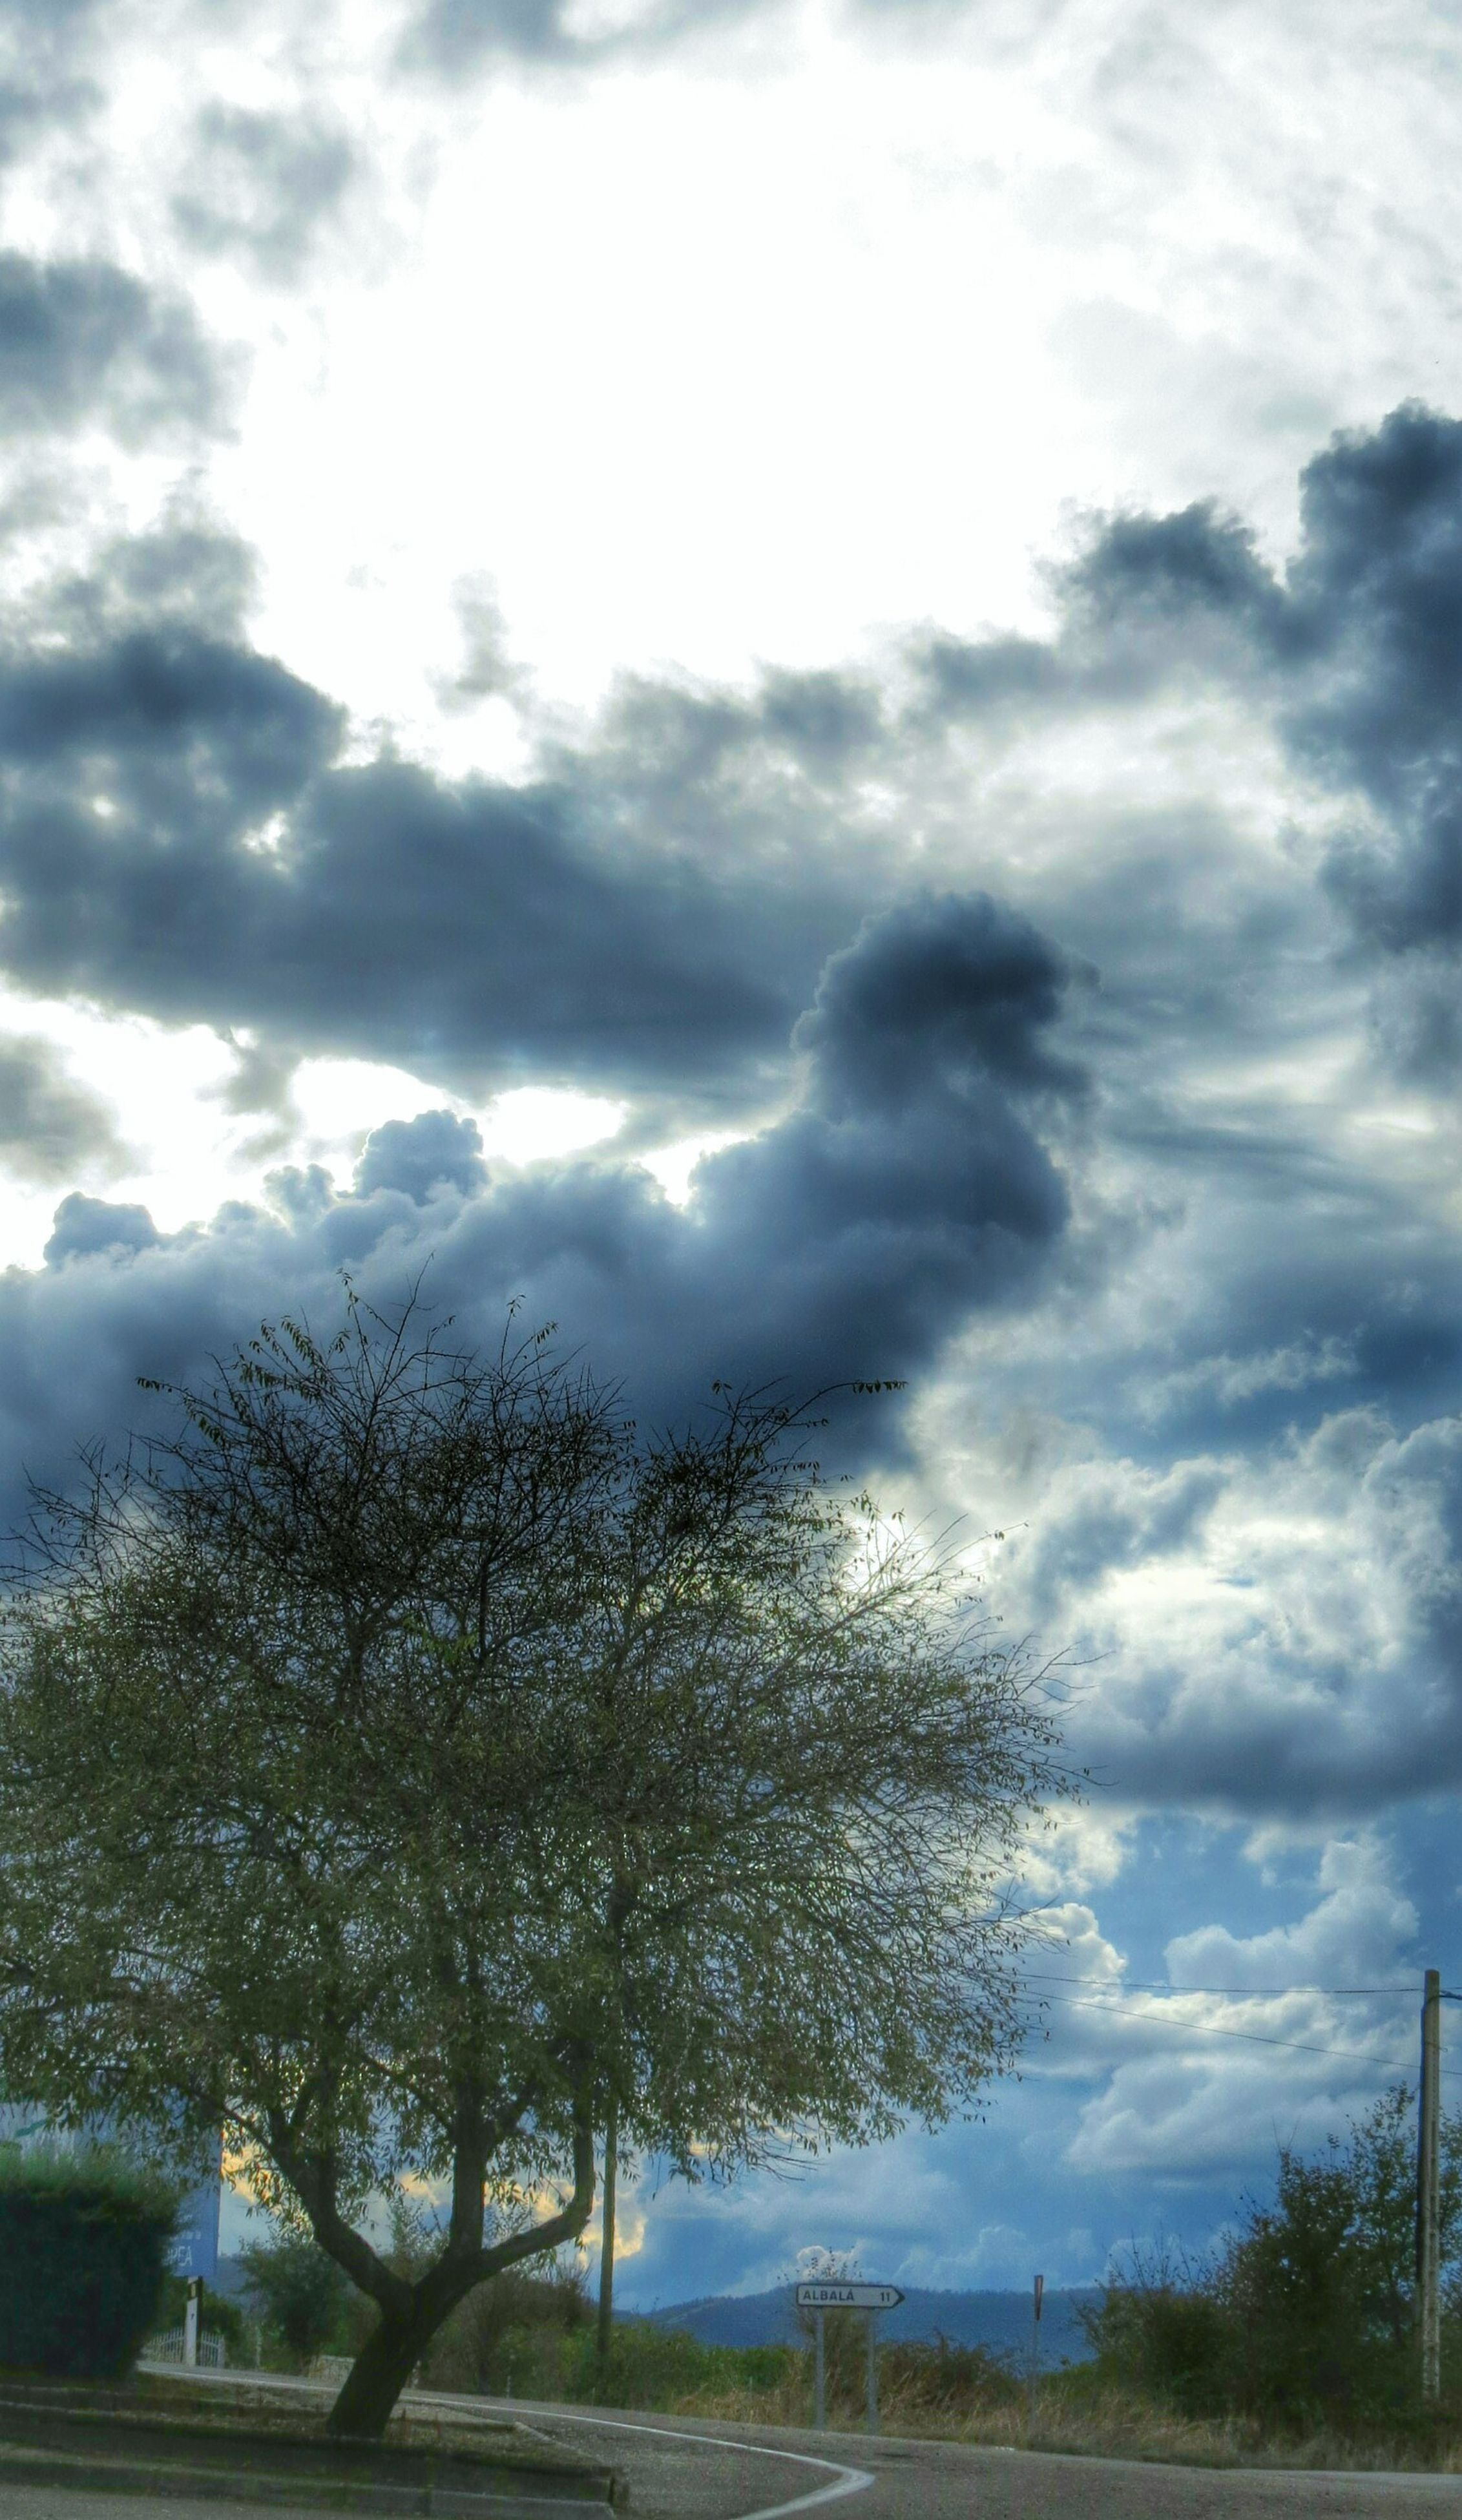 sky, tree, cloud - sky, cloudy, cloud, tranquility, nature, tranquil scene, beauty in nature, scenics, day, growth, road, field, weather, outdoors, sunlight, landscape, no people, transportation